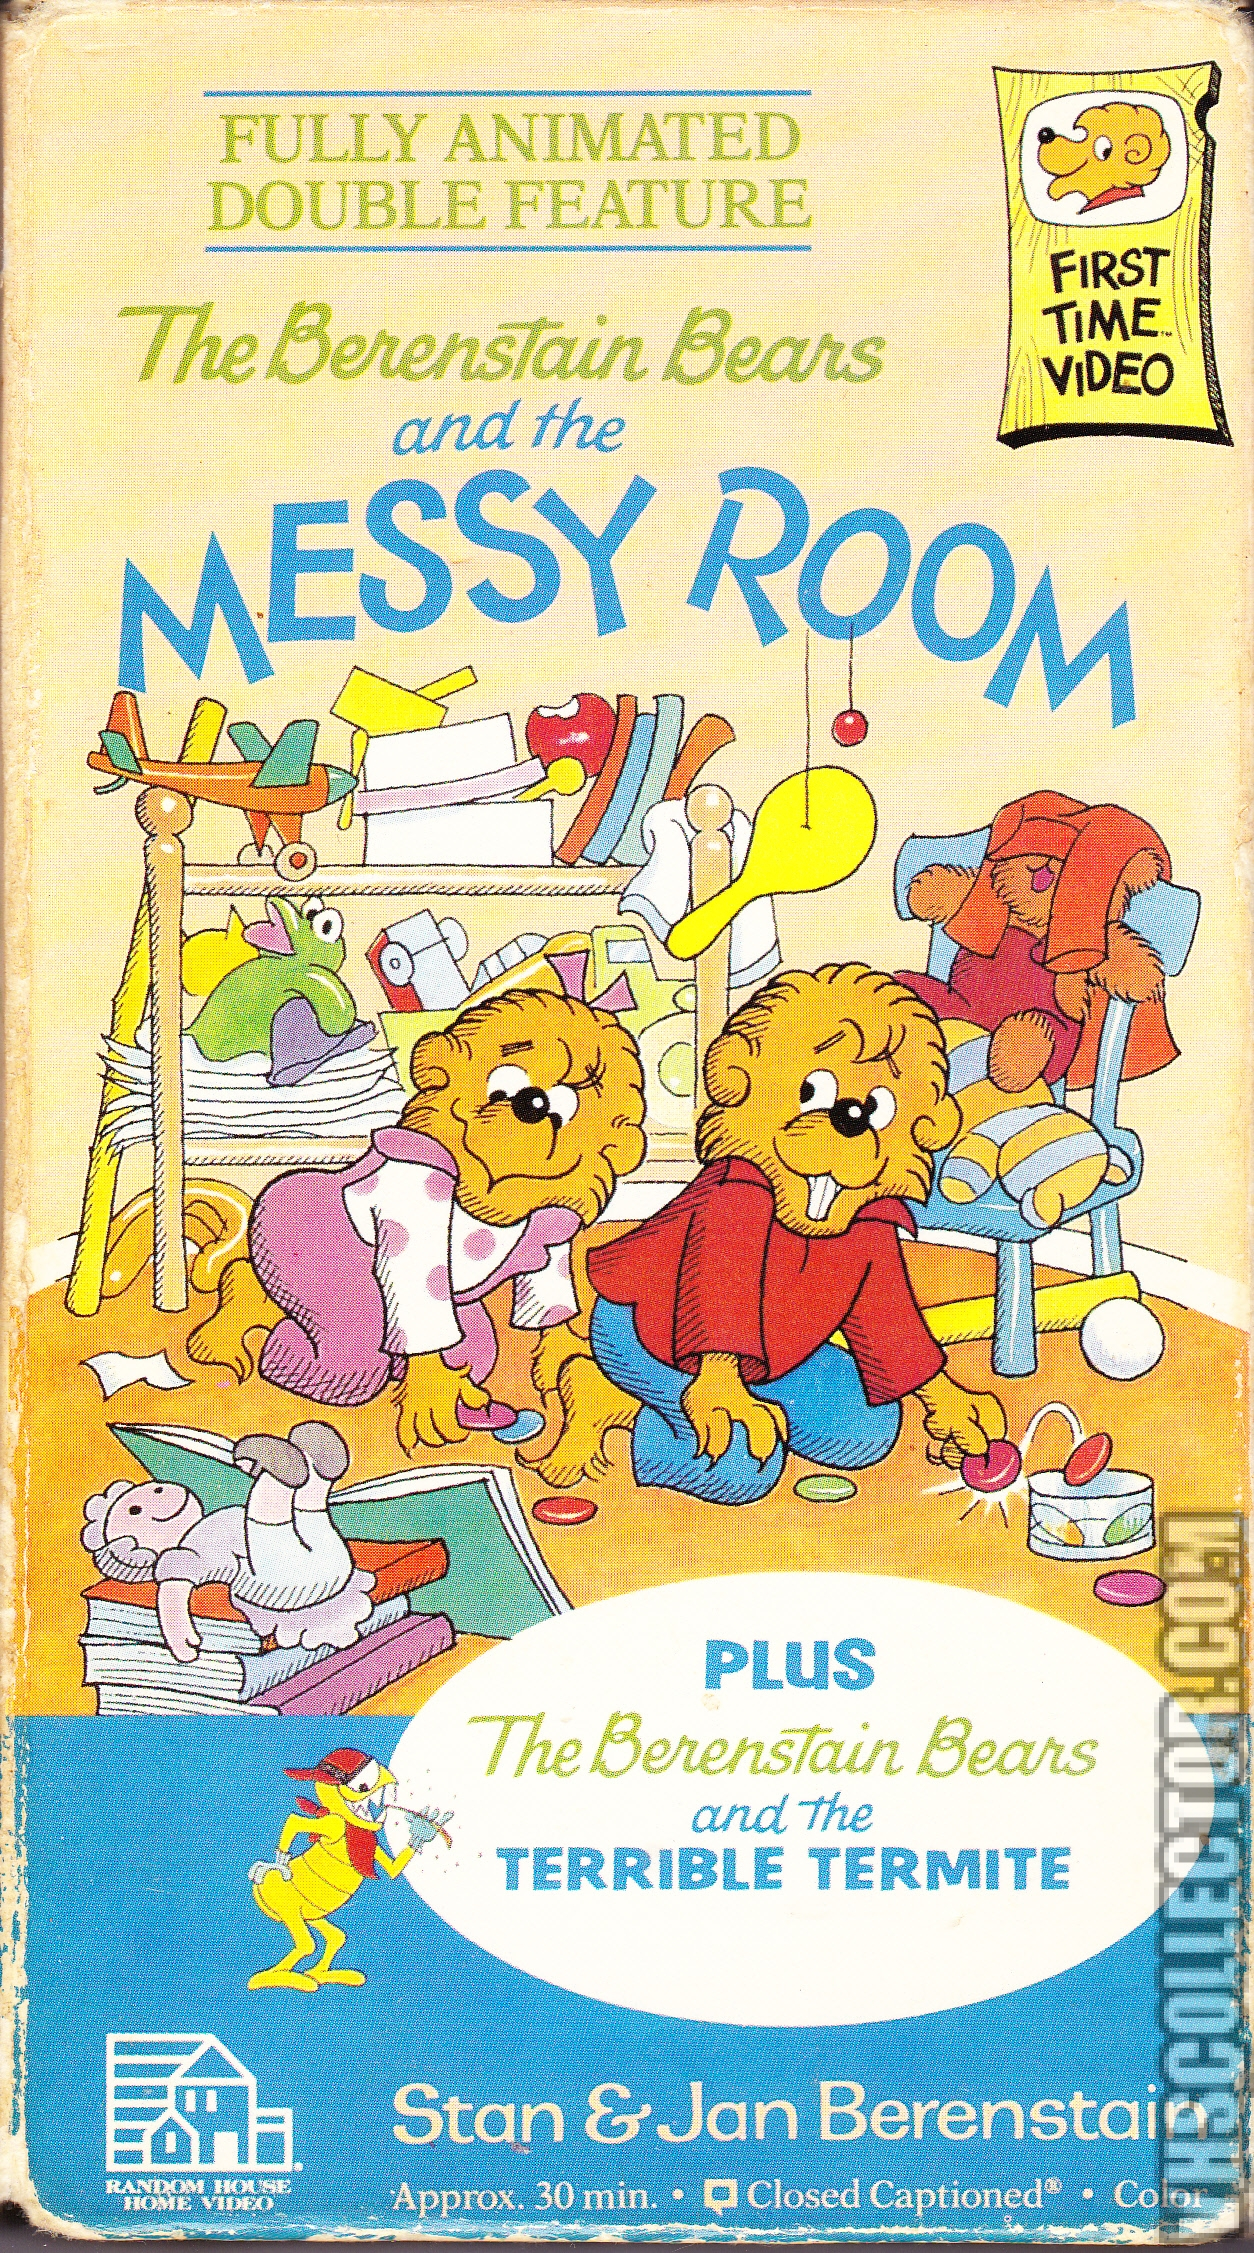 Image The Berenstain Bears And The Messy Room Vhs Front